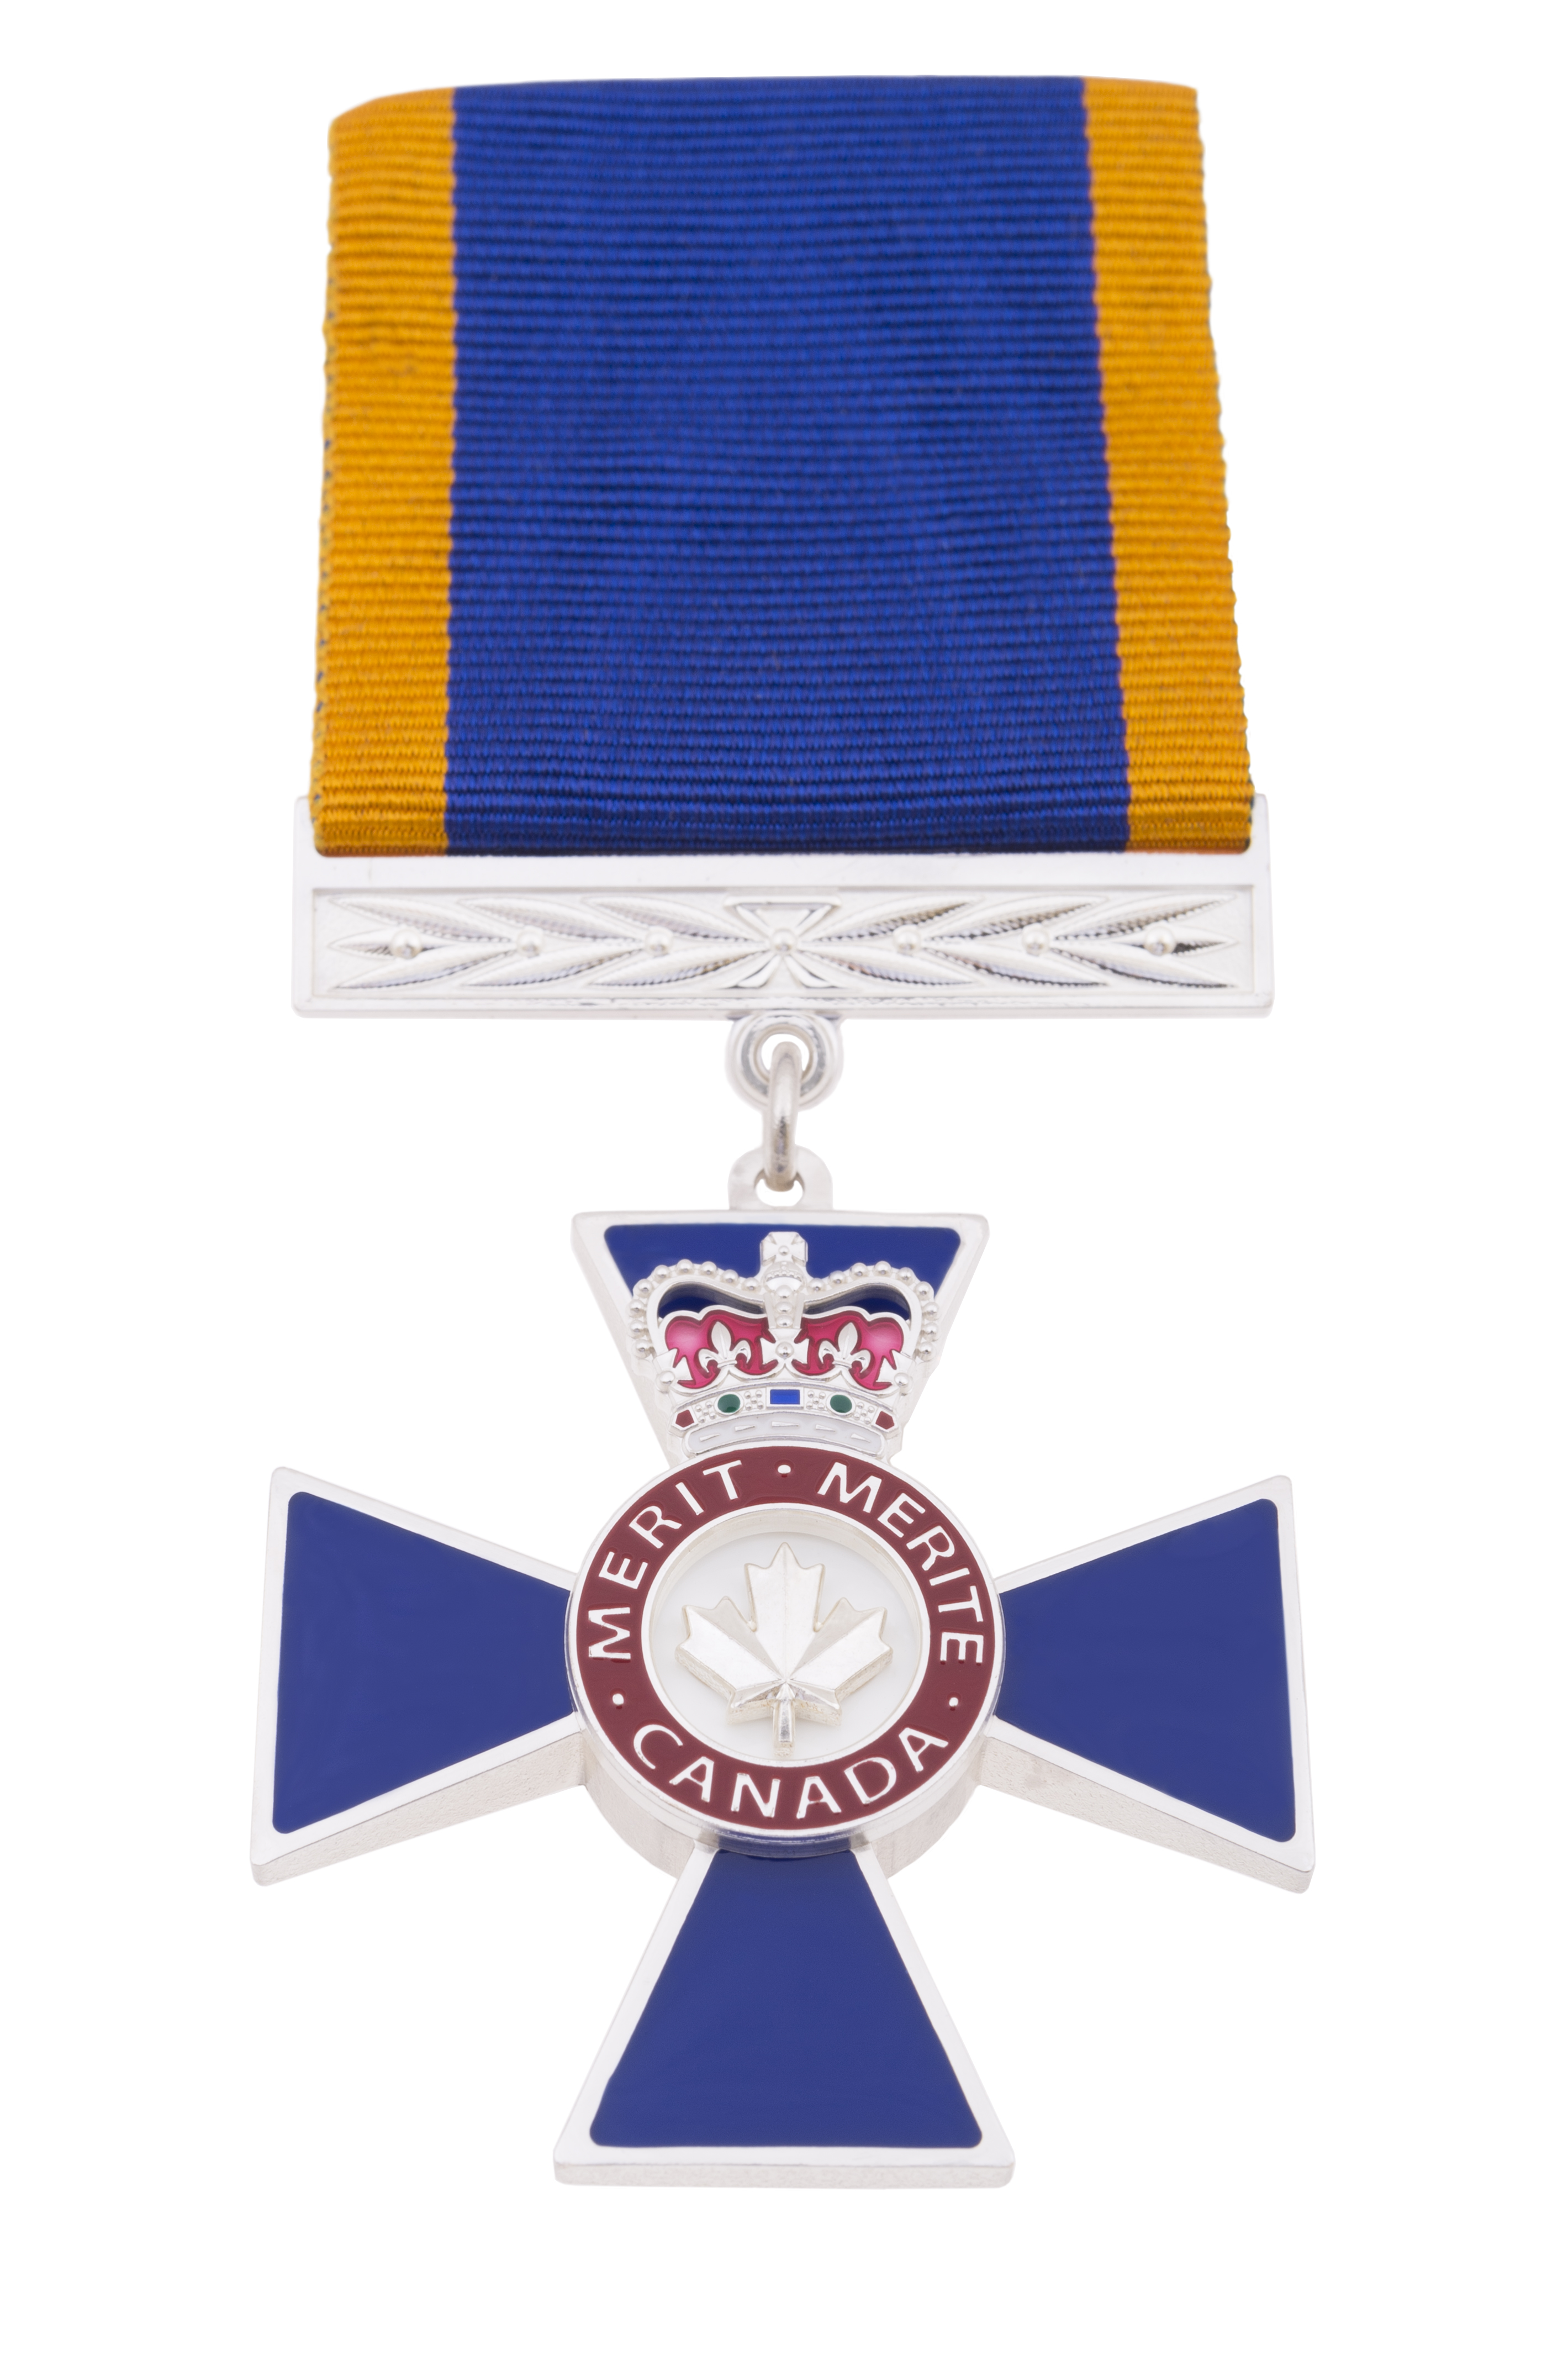 The level of Member of Military Merit, which was awarded to Master Warrant Officer Edward Hebb, recognizes exceptional service or performance of duty. PHOTO: https://www.gg.ca/en/honours/canadian-honours/directory-honours/order-military-merit